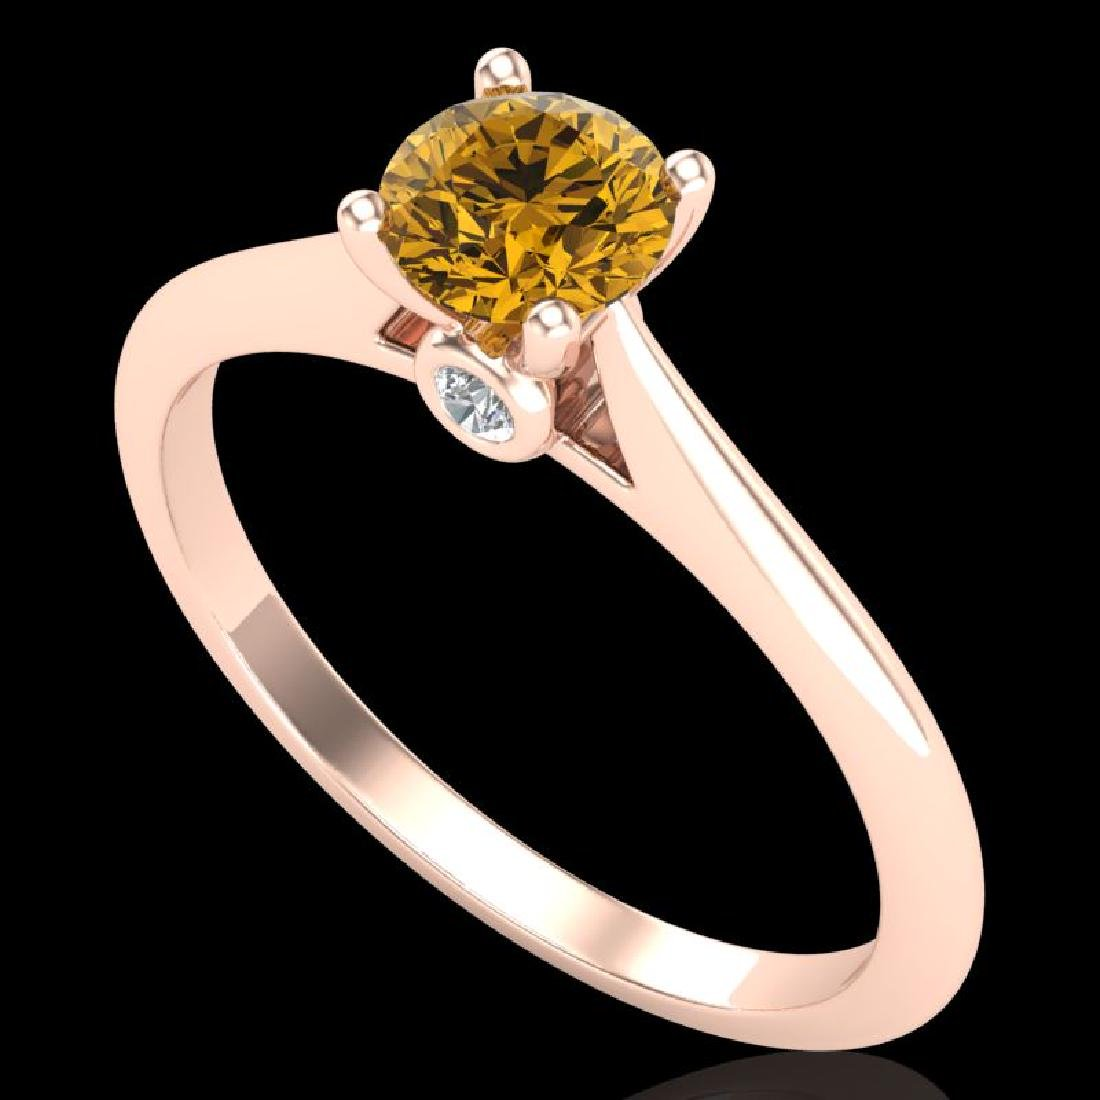 0.56 CTW Intense Fancy Yellow Diamond Engagement Art